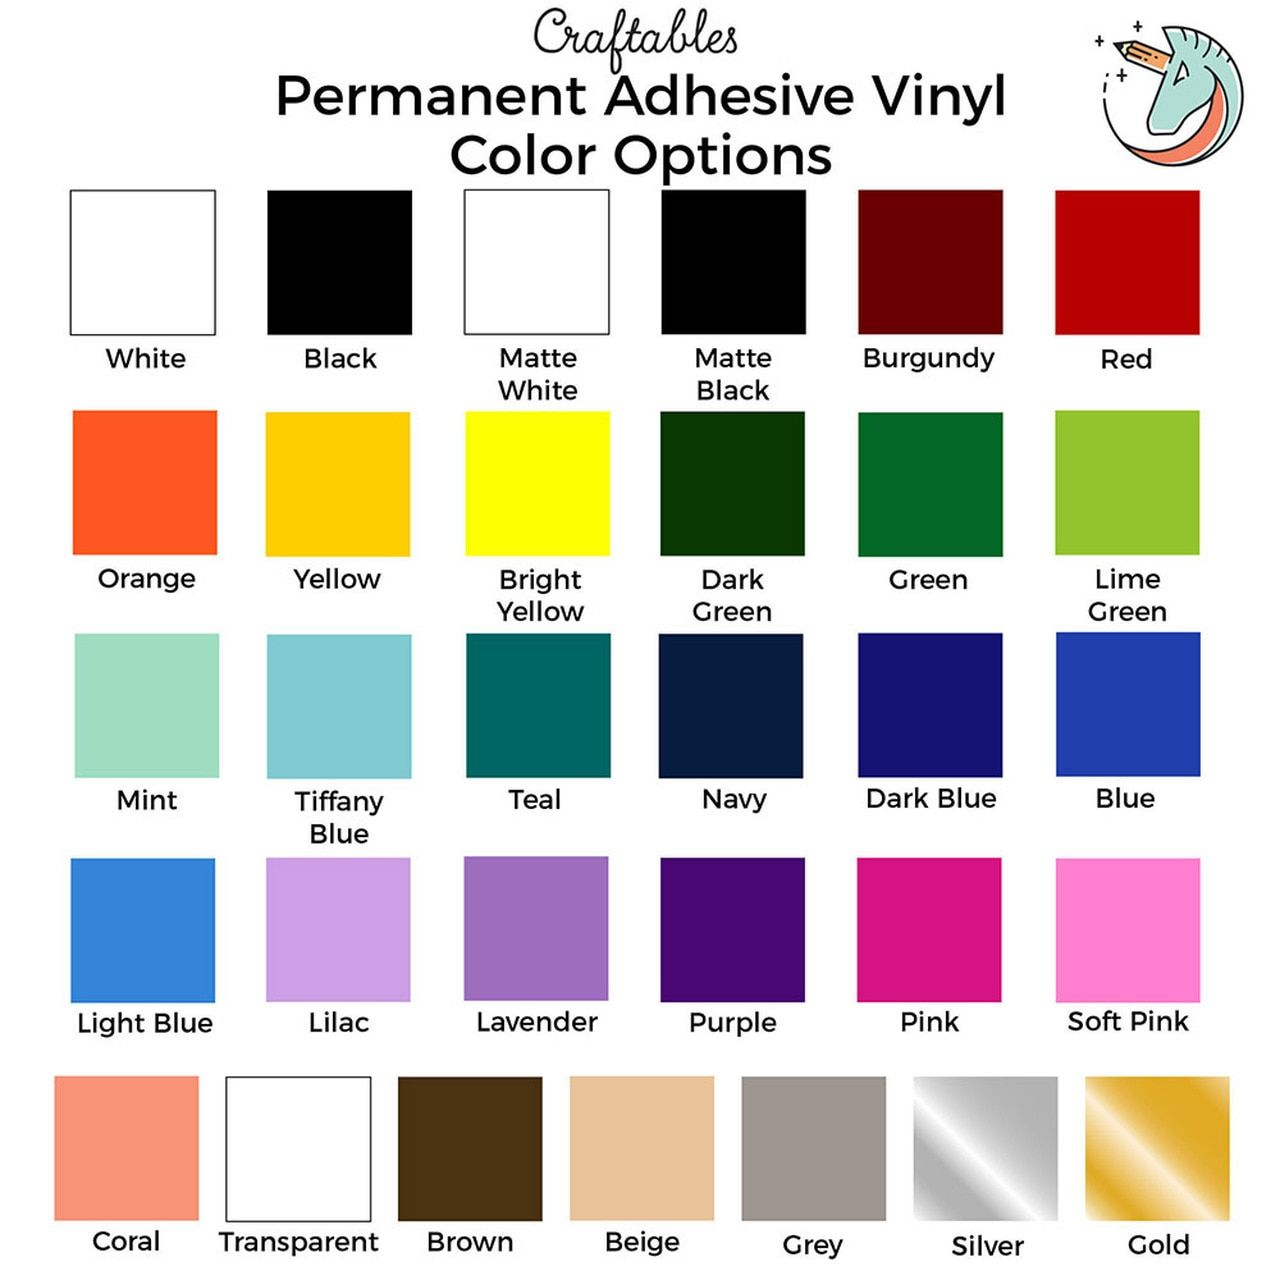 Adhesive Vinyl Sheets 12 X 12 Permanent Outdoor Vinyl For Cricut Silhouette By Craftables In 2020 Adhesive Vinyl Sheets Adhesive Vinyl Vinyl Rolls